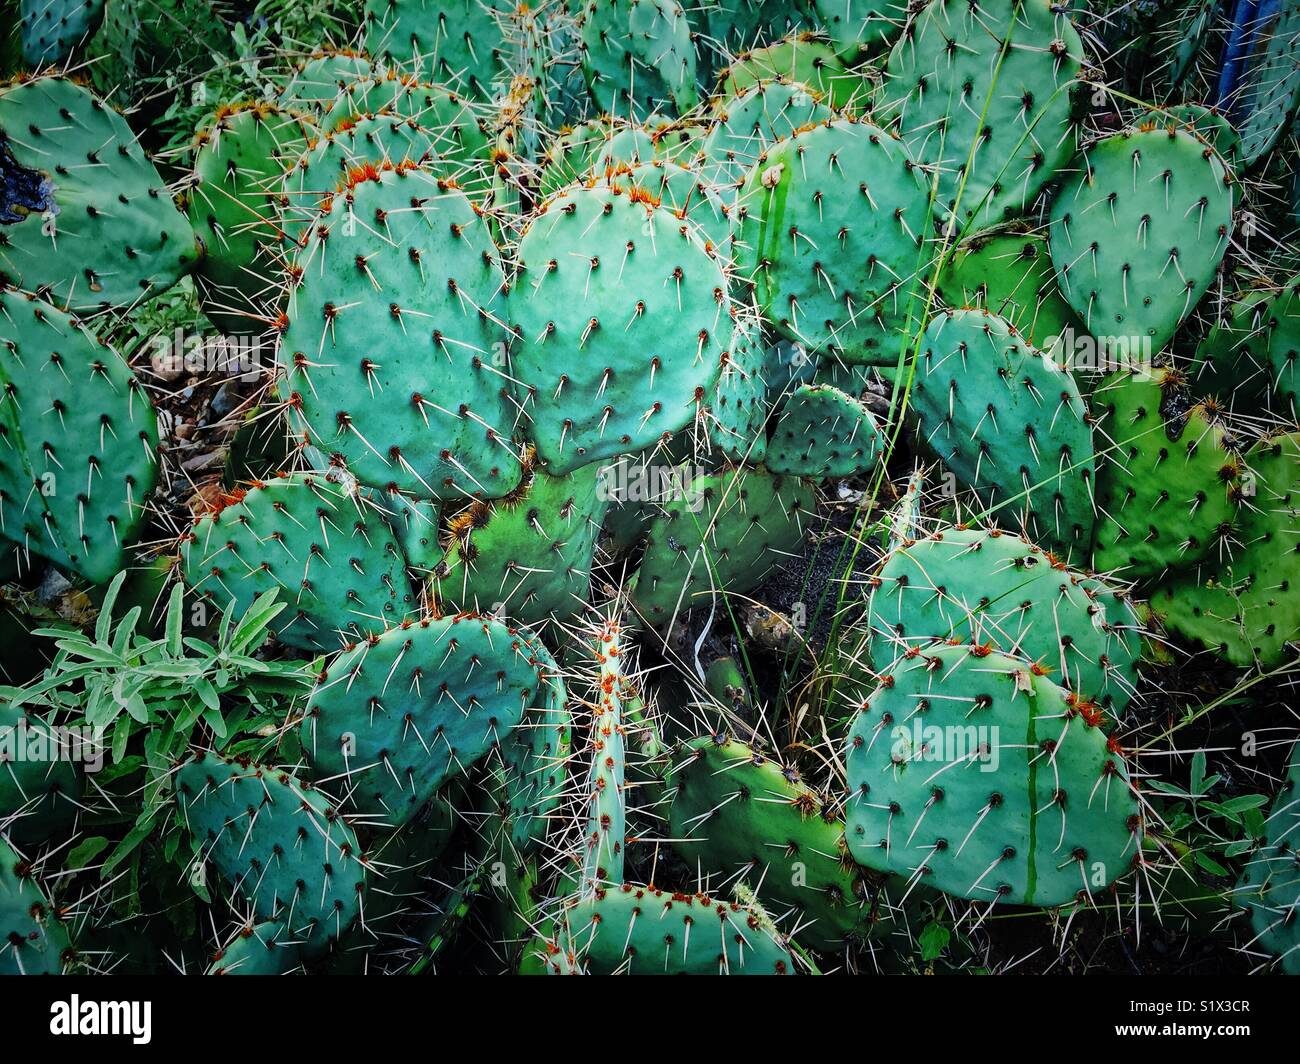 Prickly pear cactus in the wild in Arizona - Stock Image